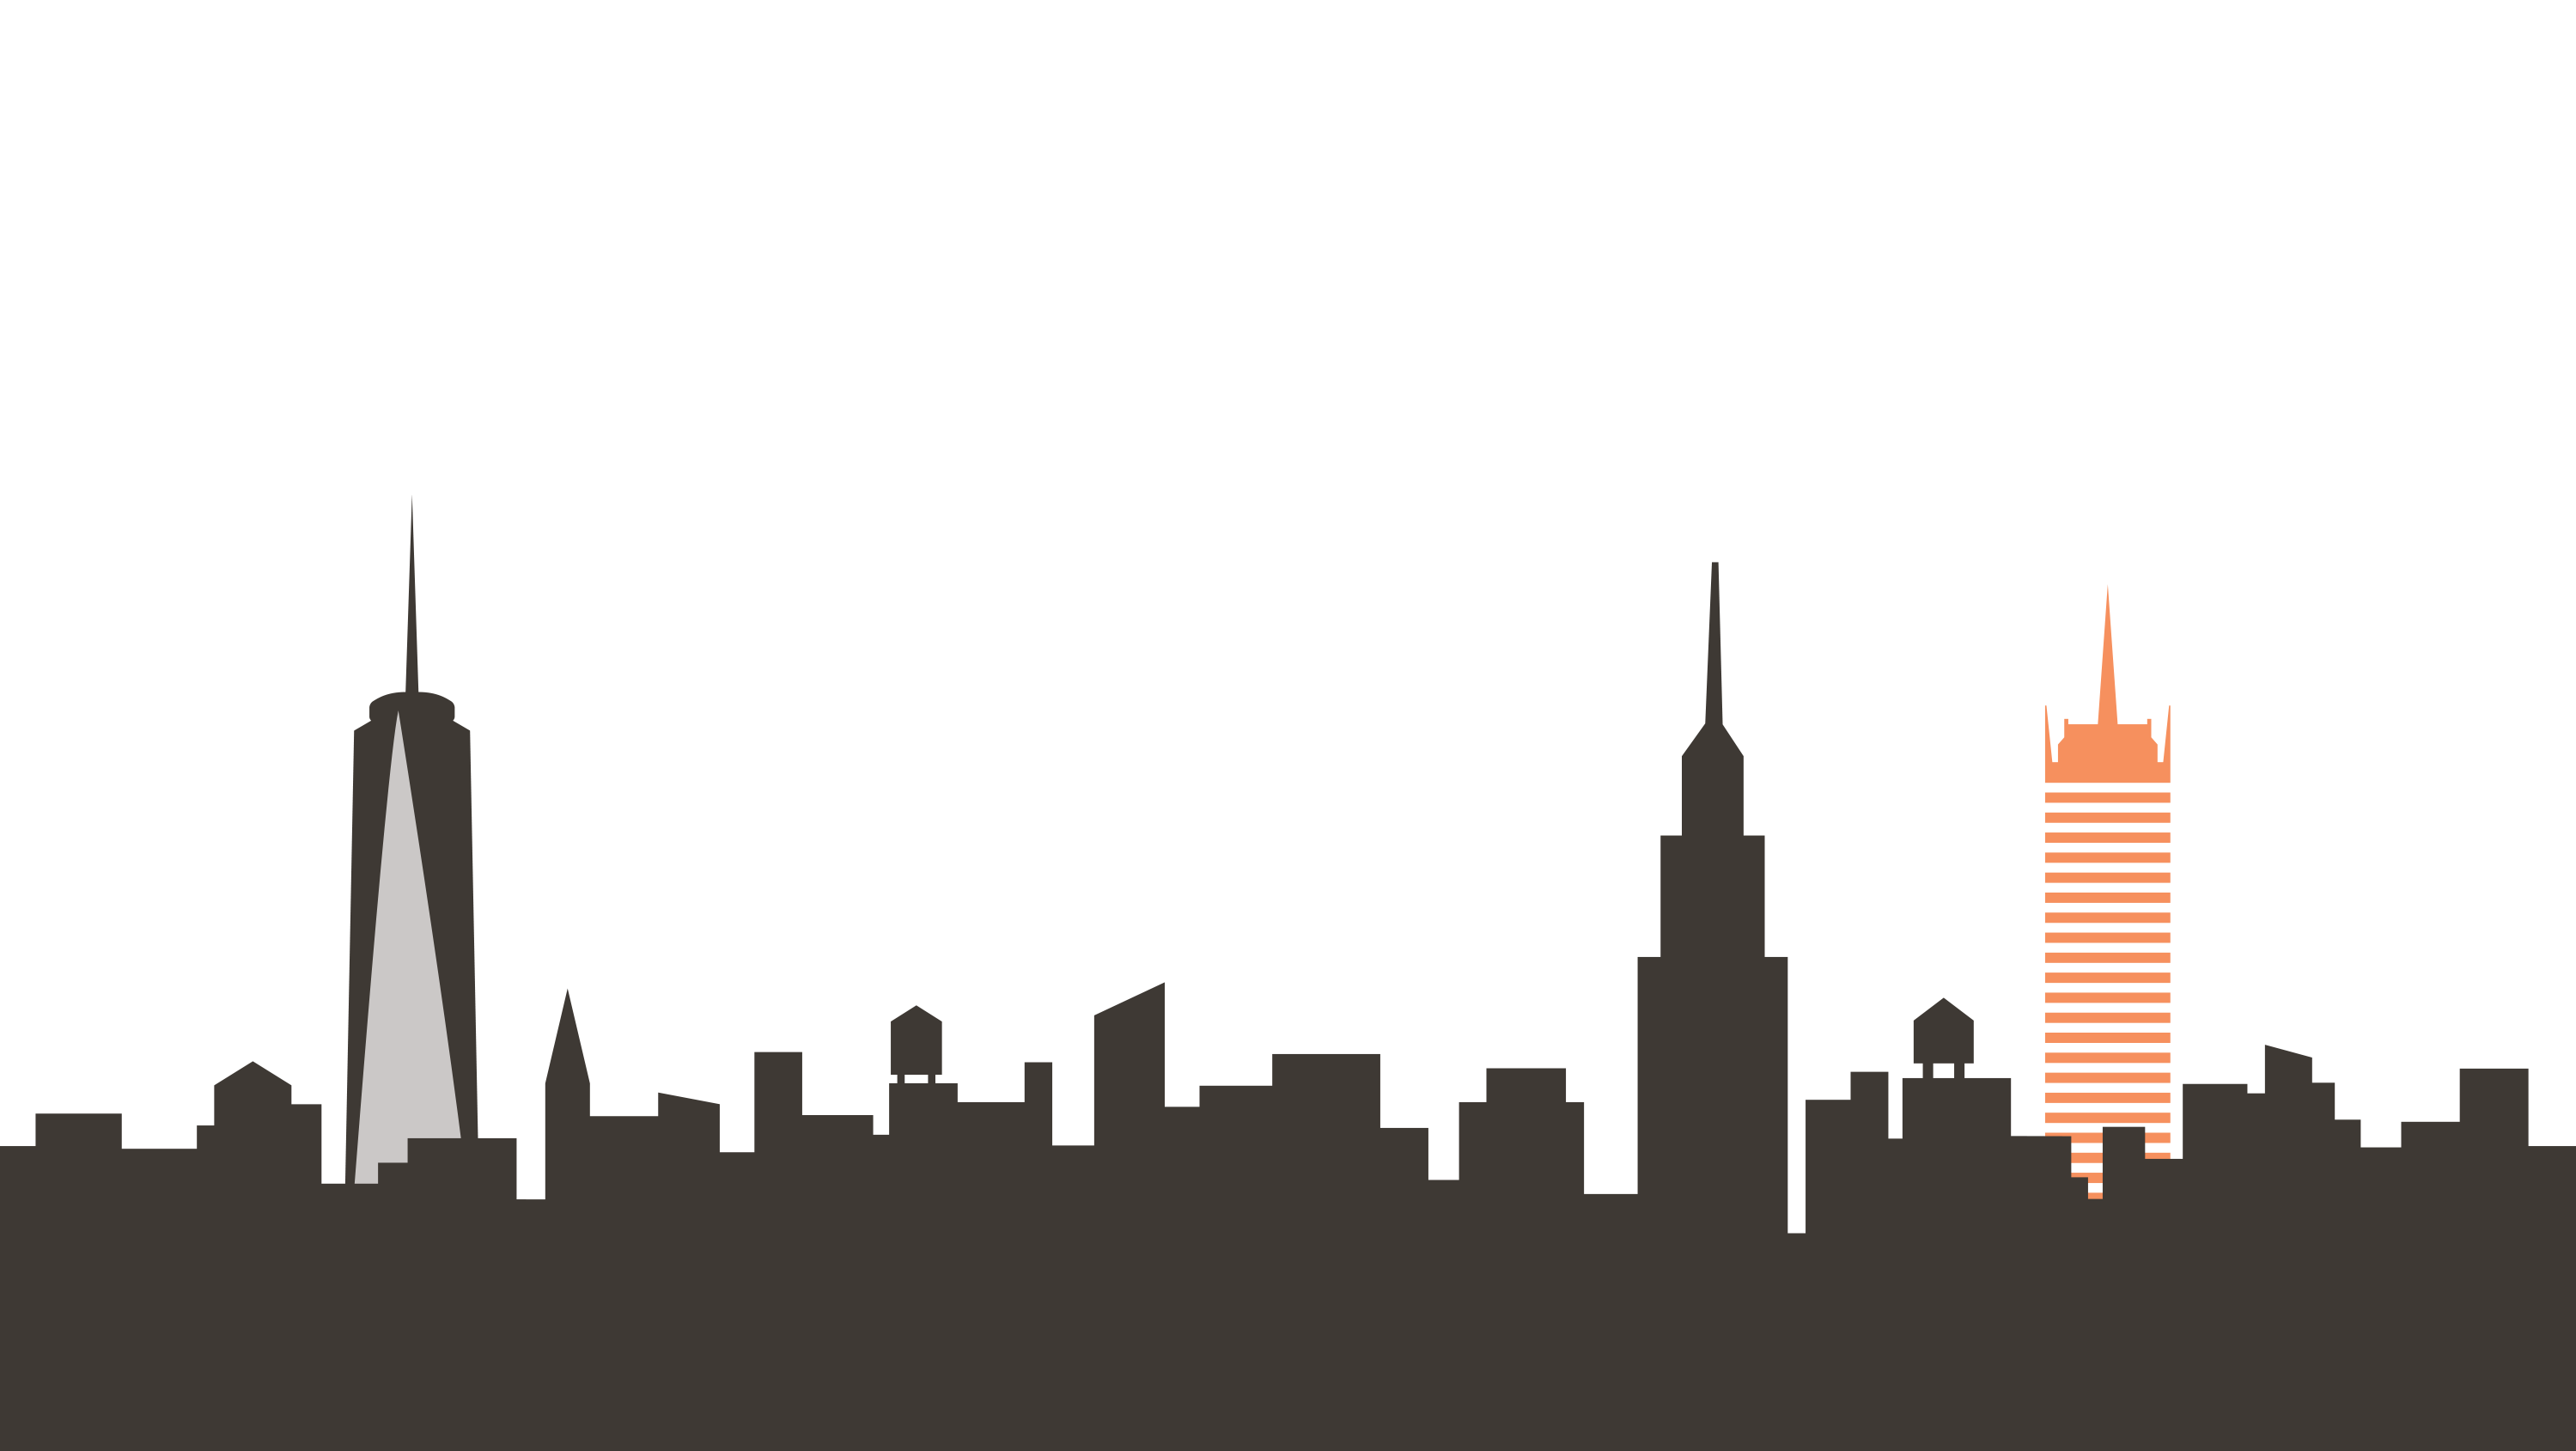 Free New York Png, Download Free Clip Art, Free Clip Art on Clipart.